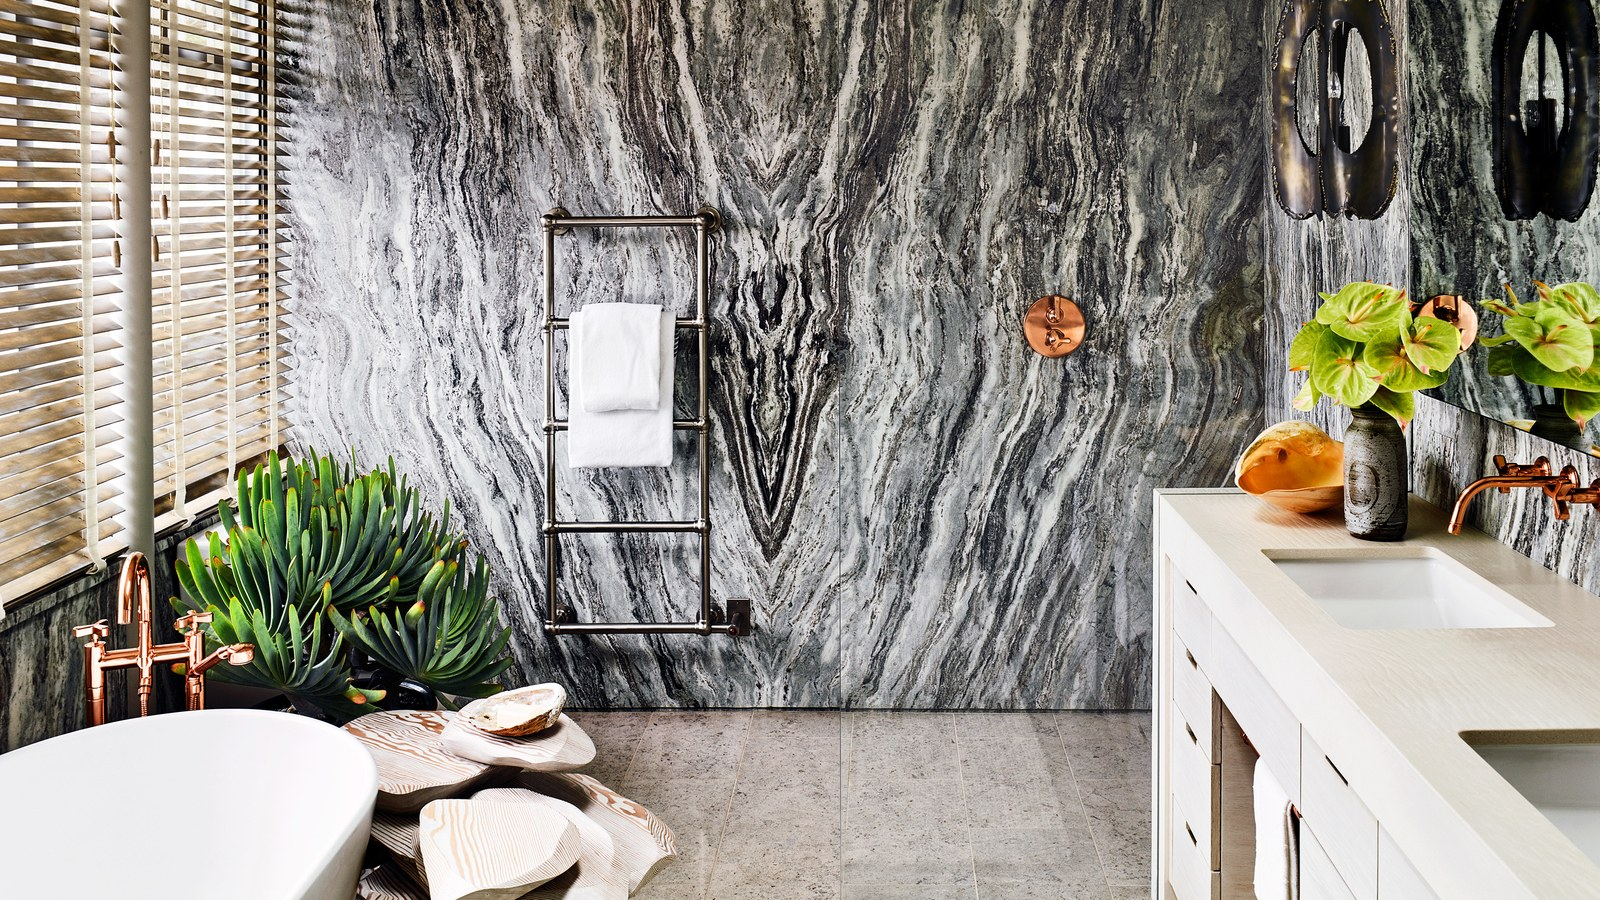 architectural digest Best of 2019: Great Bath Design Awards by Architectural Digest Great Design Awards Bookmatched quartzite wall panels in a California bath by Jamie Bush